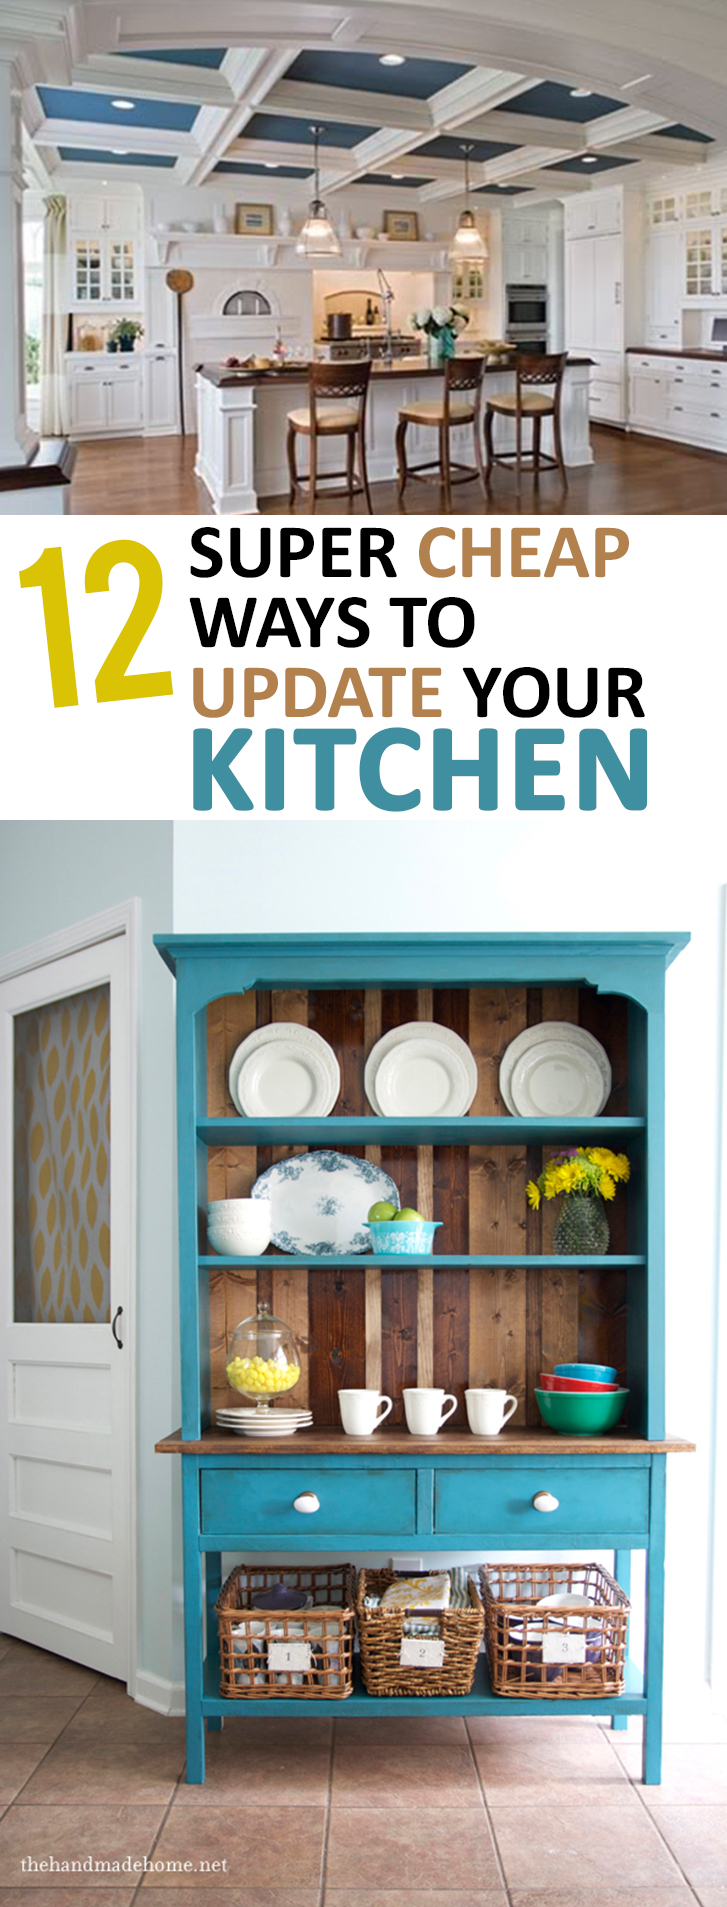 12 super cheap ways to update your kitchen How to redesign your kitchen